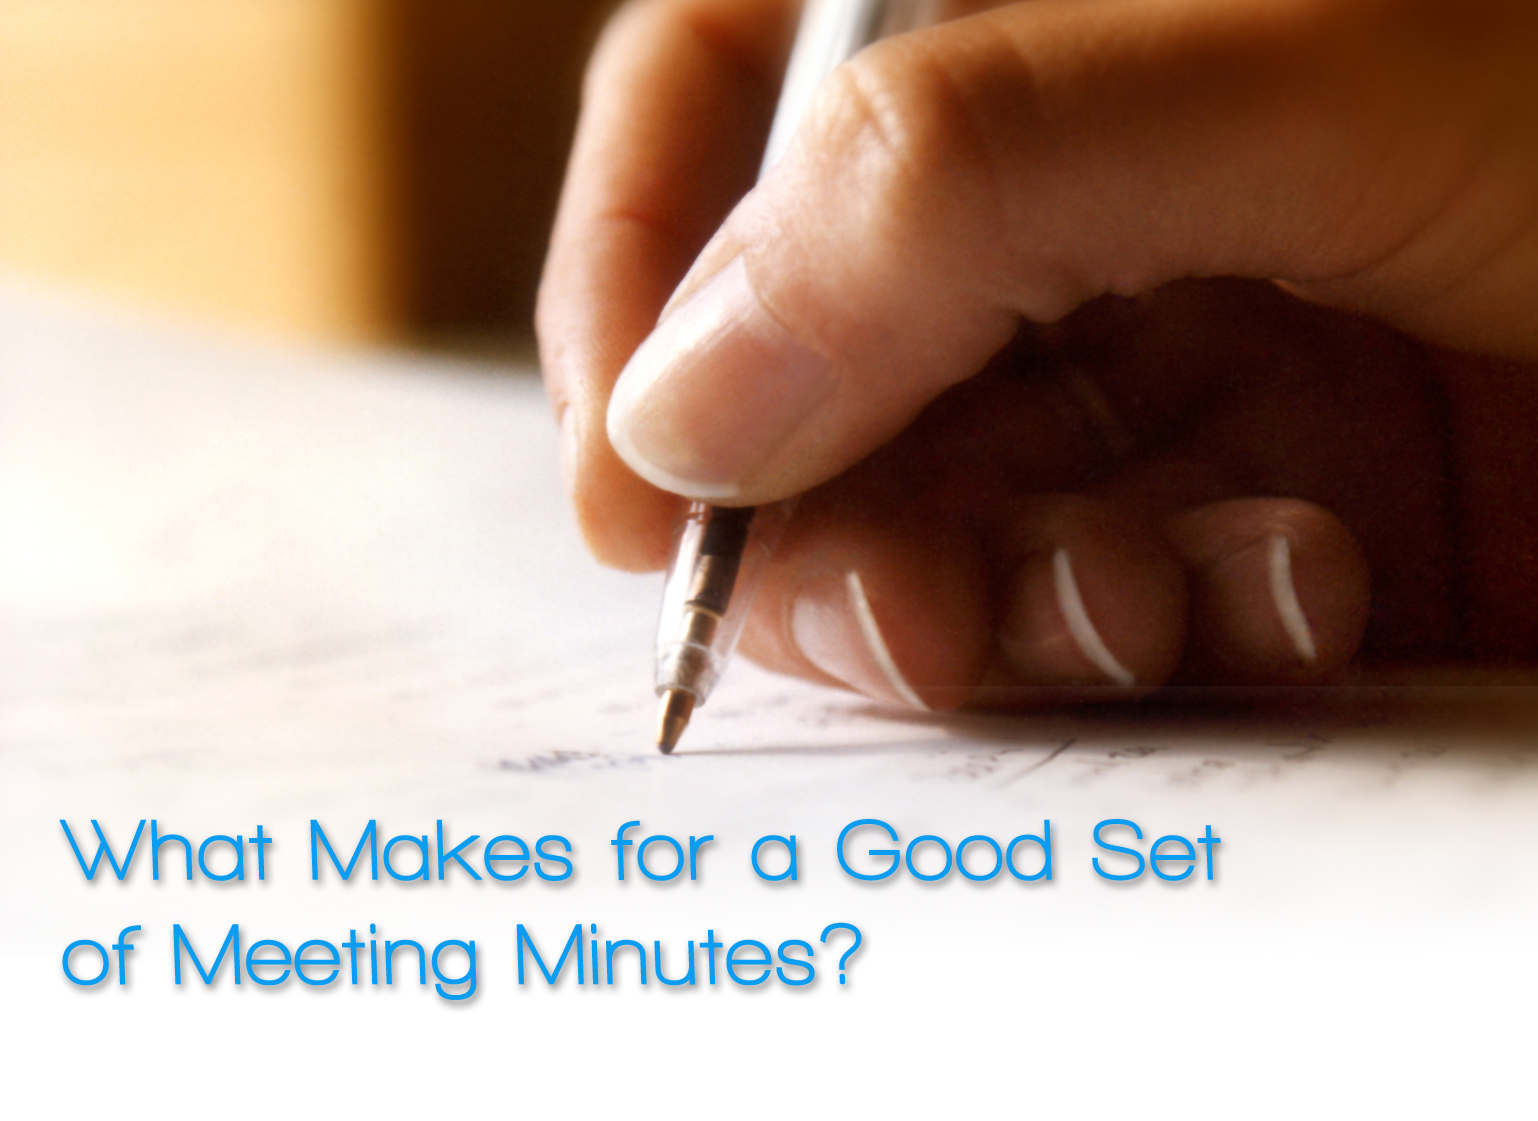 What Makes for a Good Set of Meeting Minutes? – Article by Robert M. DeNichilo